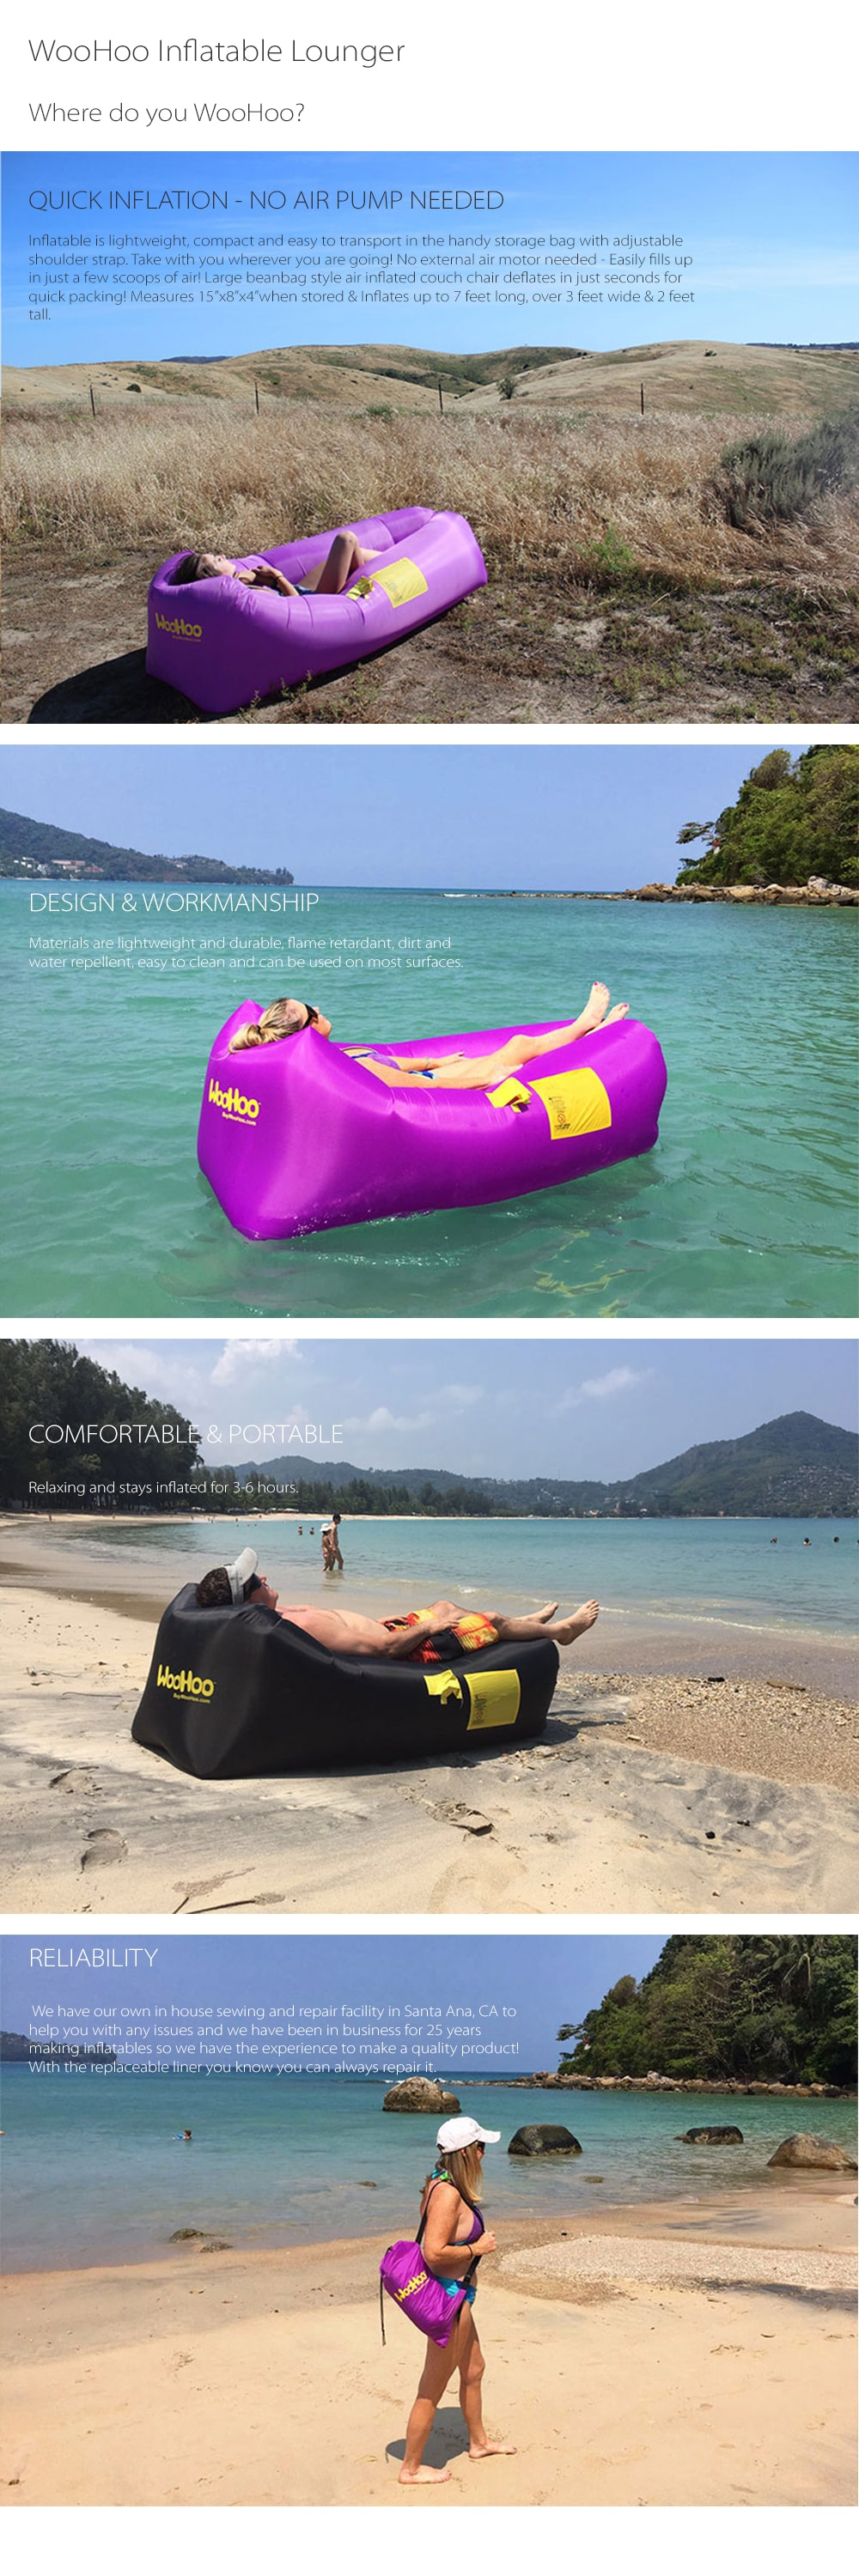 WooHoo Air Filled Inflatable Lounger Where Do You WooHoo